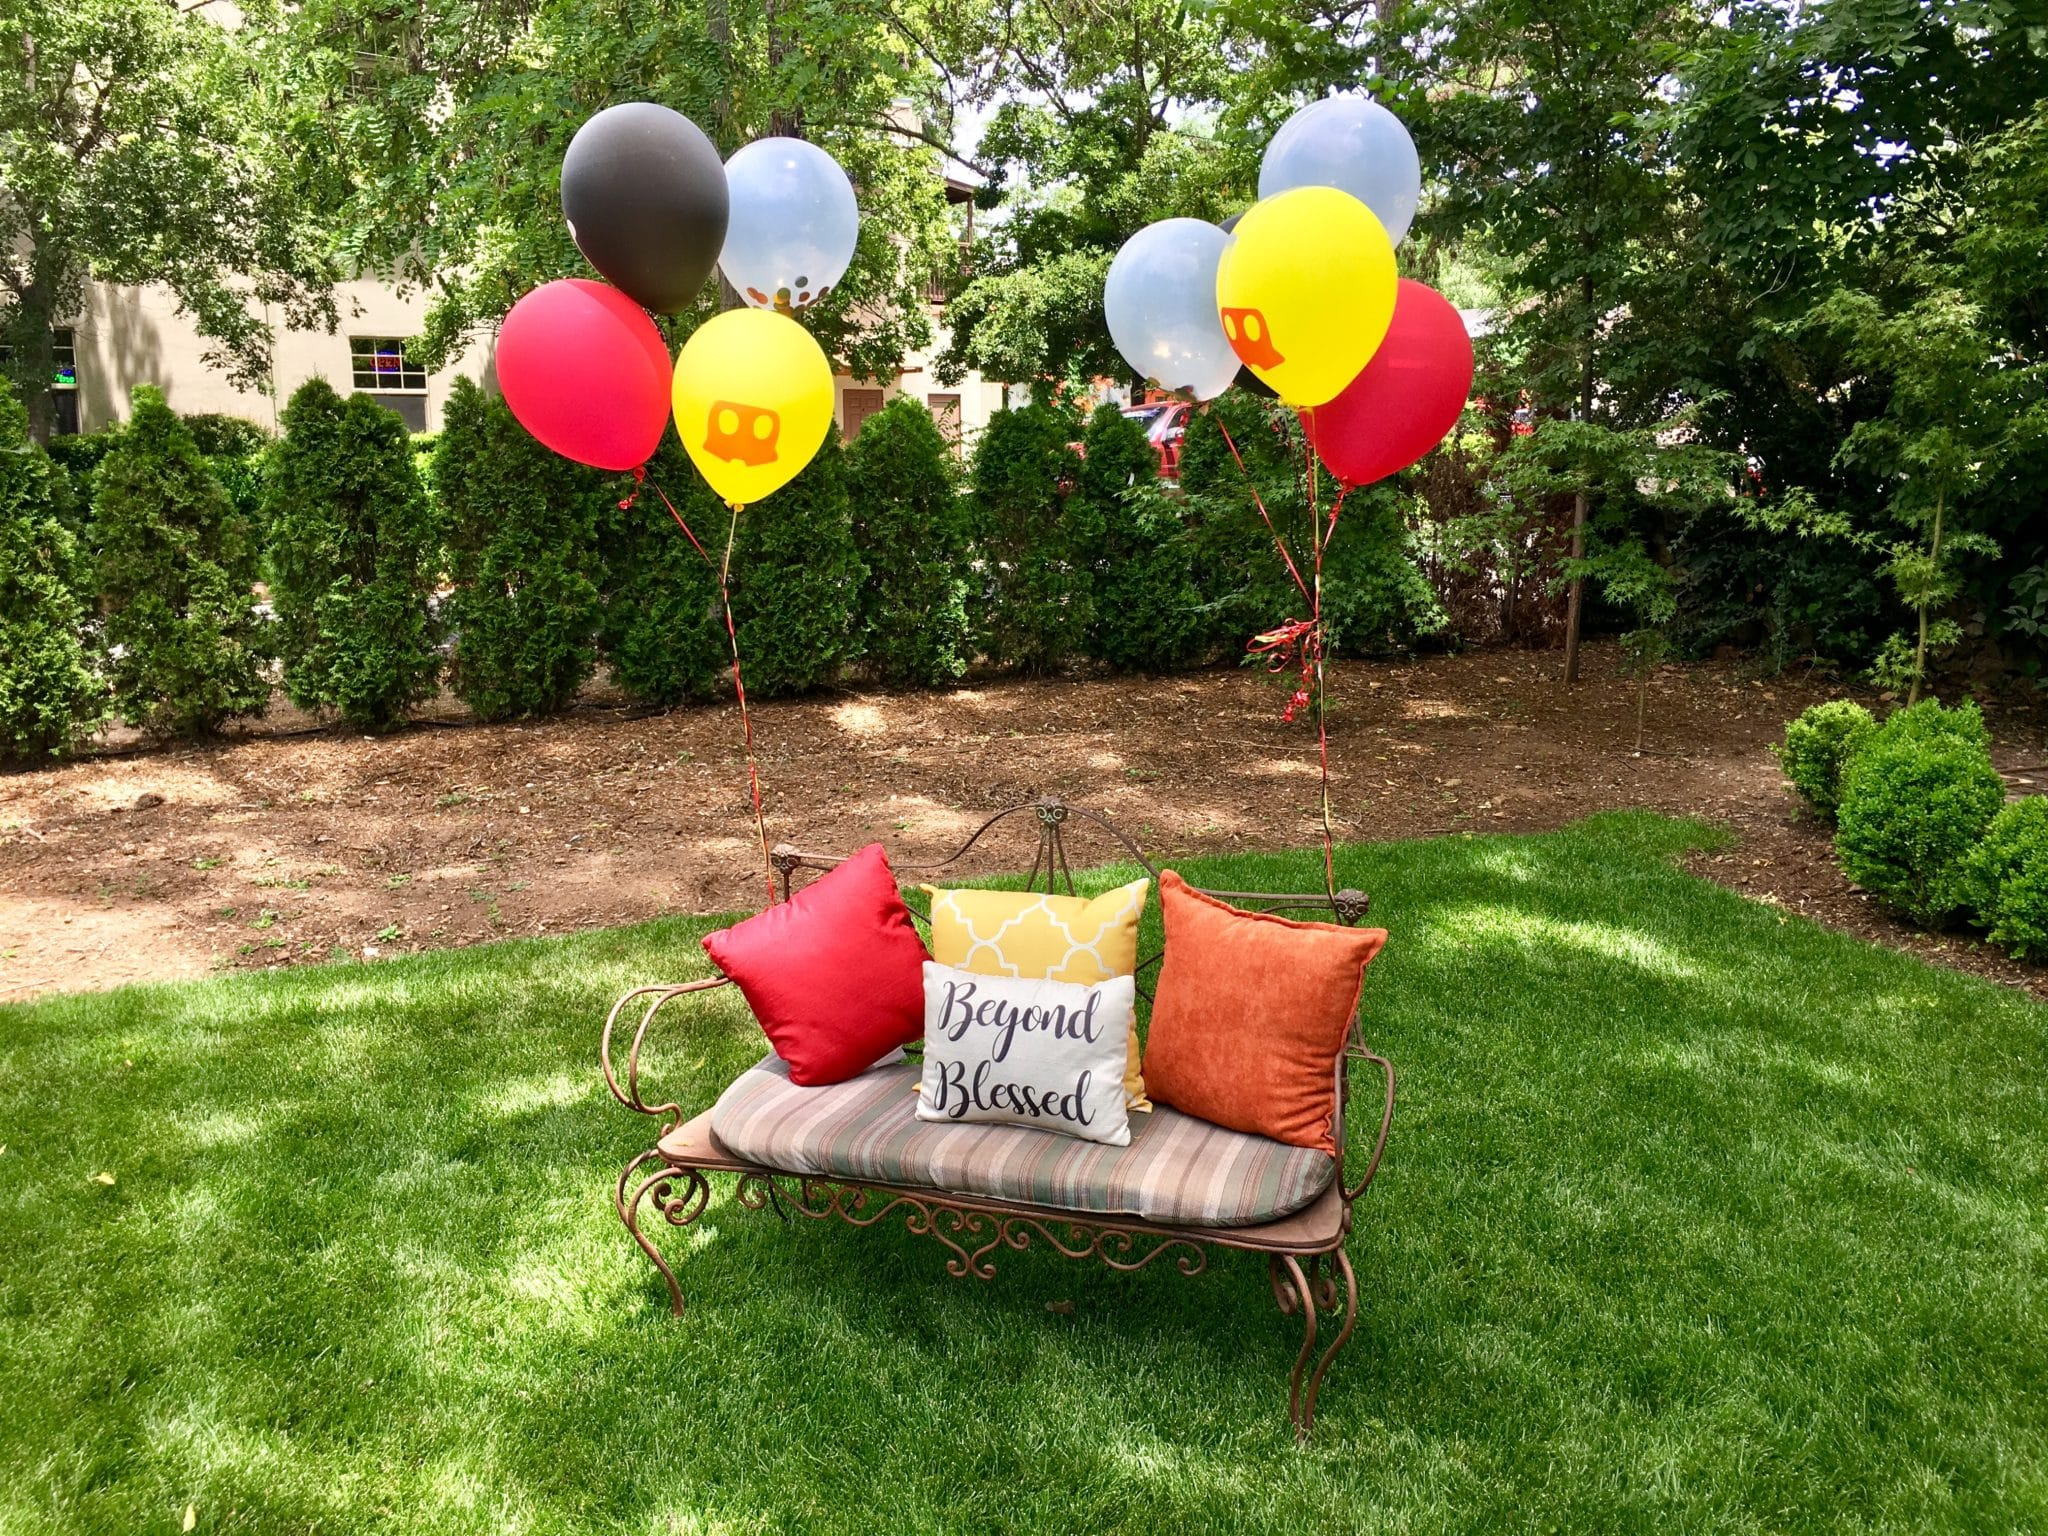 green lawn bench balloons